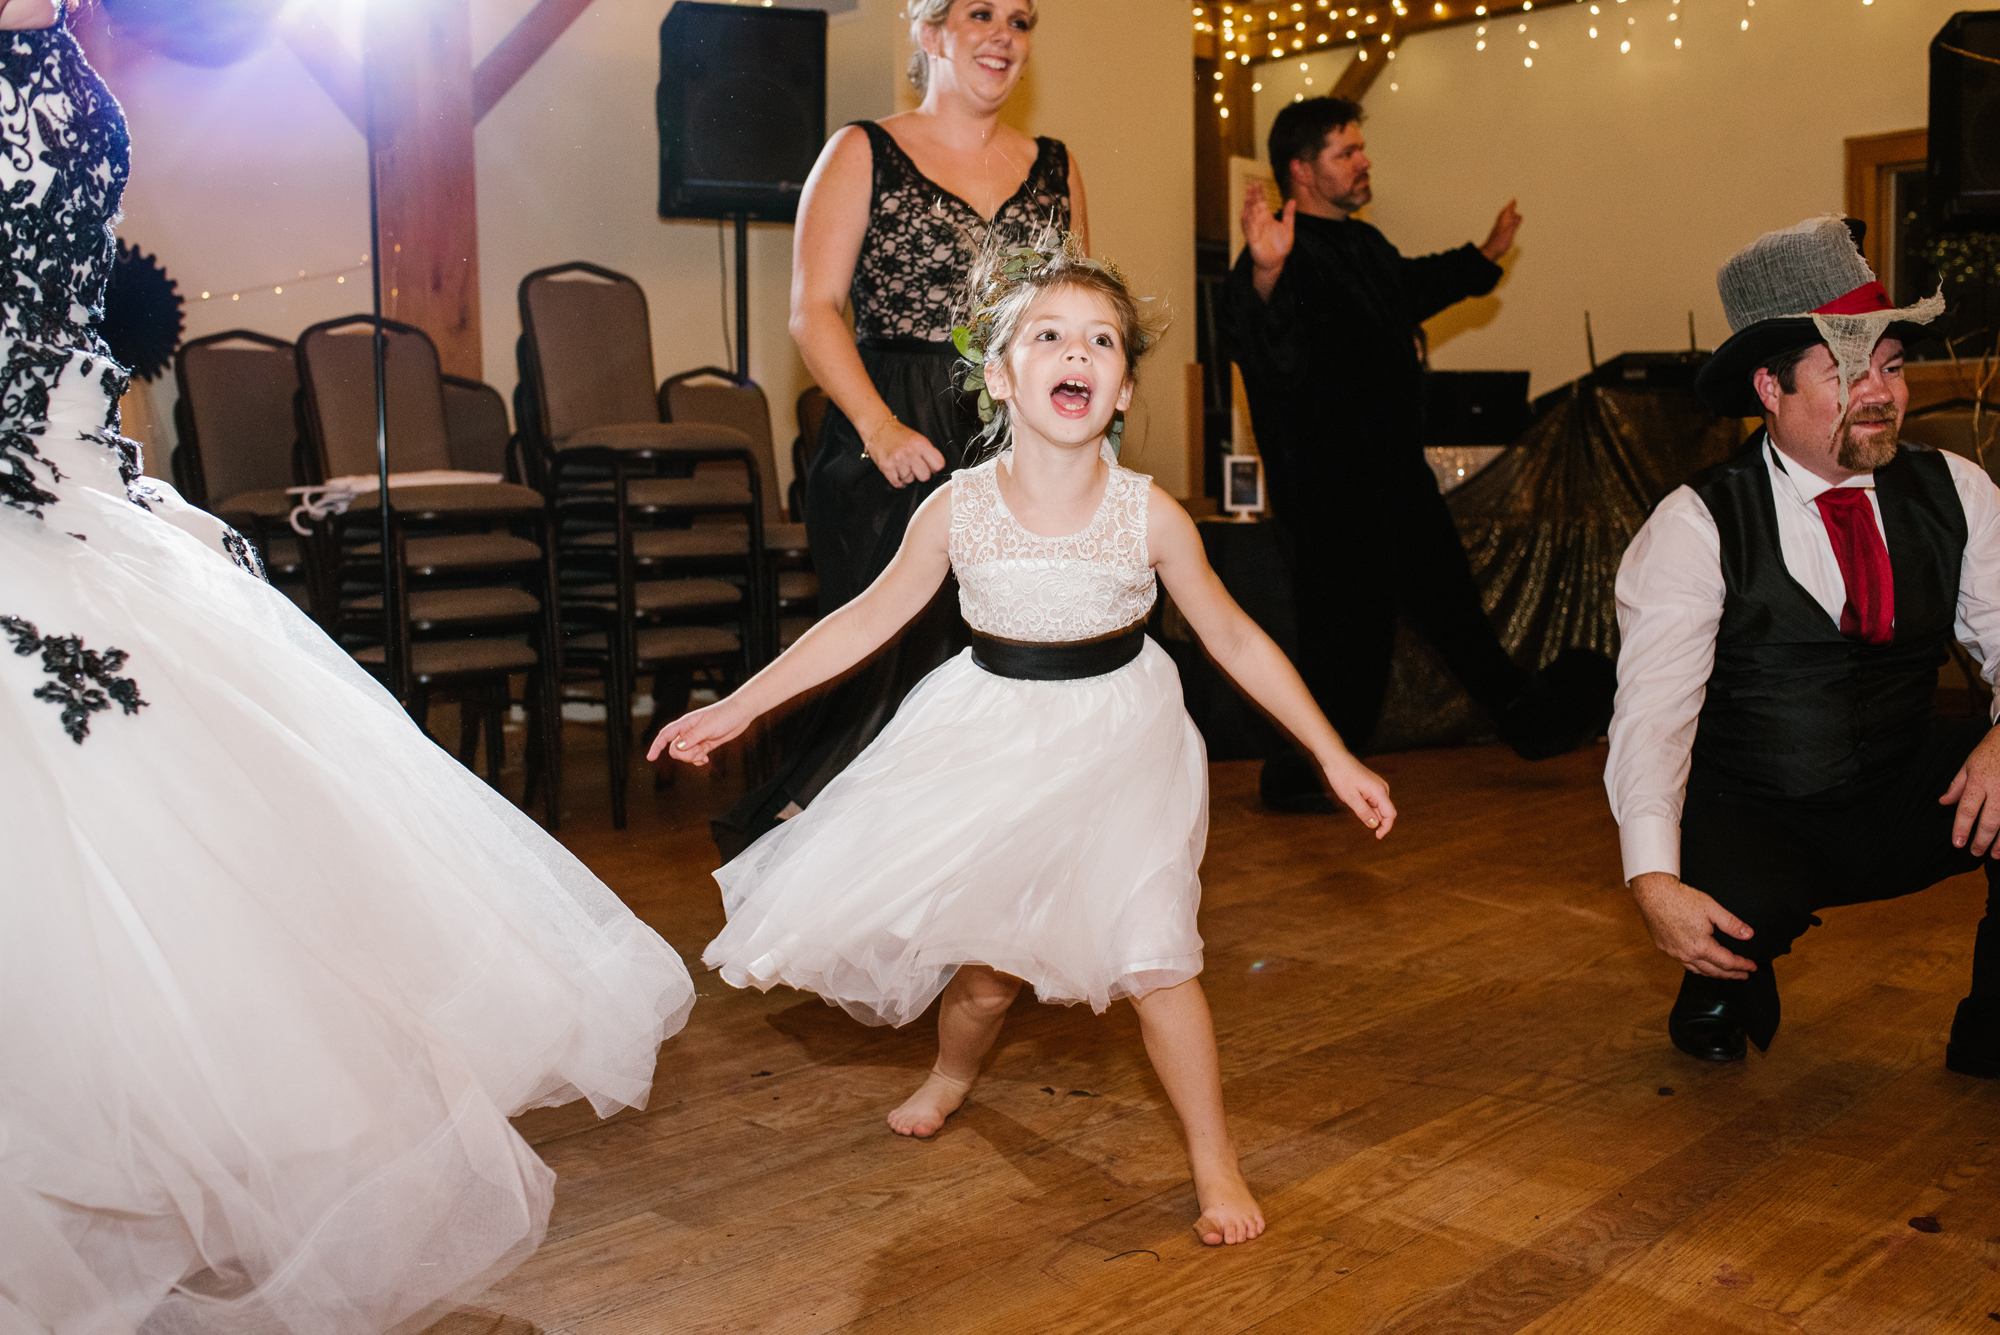 ann-arbor-michigan-halloween-themed-wedding-dancing-photos (13).jpg